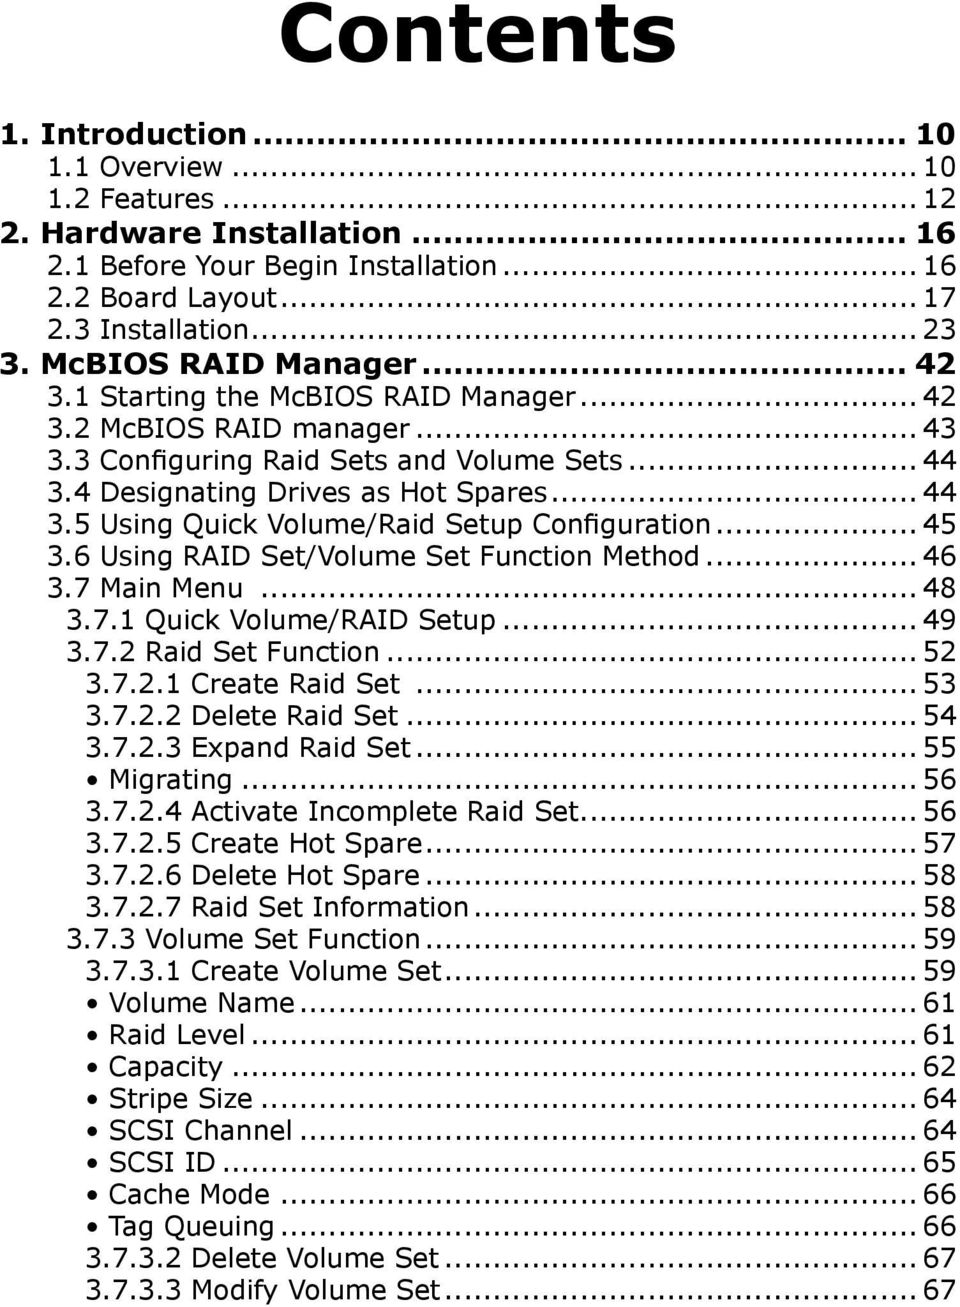 .. 45 3.6 Using RAID Set/Volume Set Function Method... 46 3.7 Main Menu... 48 3.7.1 Quick Volume/RAID Setup... 49 3.7.2 Raid Set Function... 52 3.7.2.1 Create Raid Set... 53 3.7.2.2 Delete Raid Set.